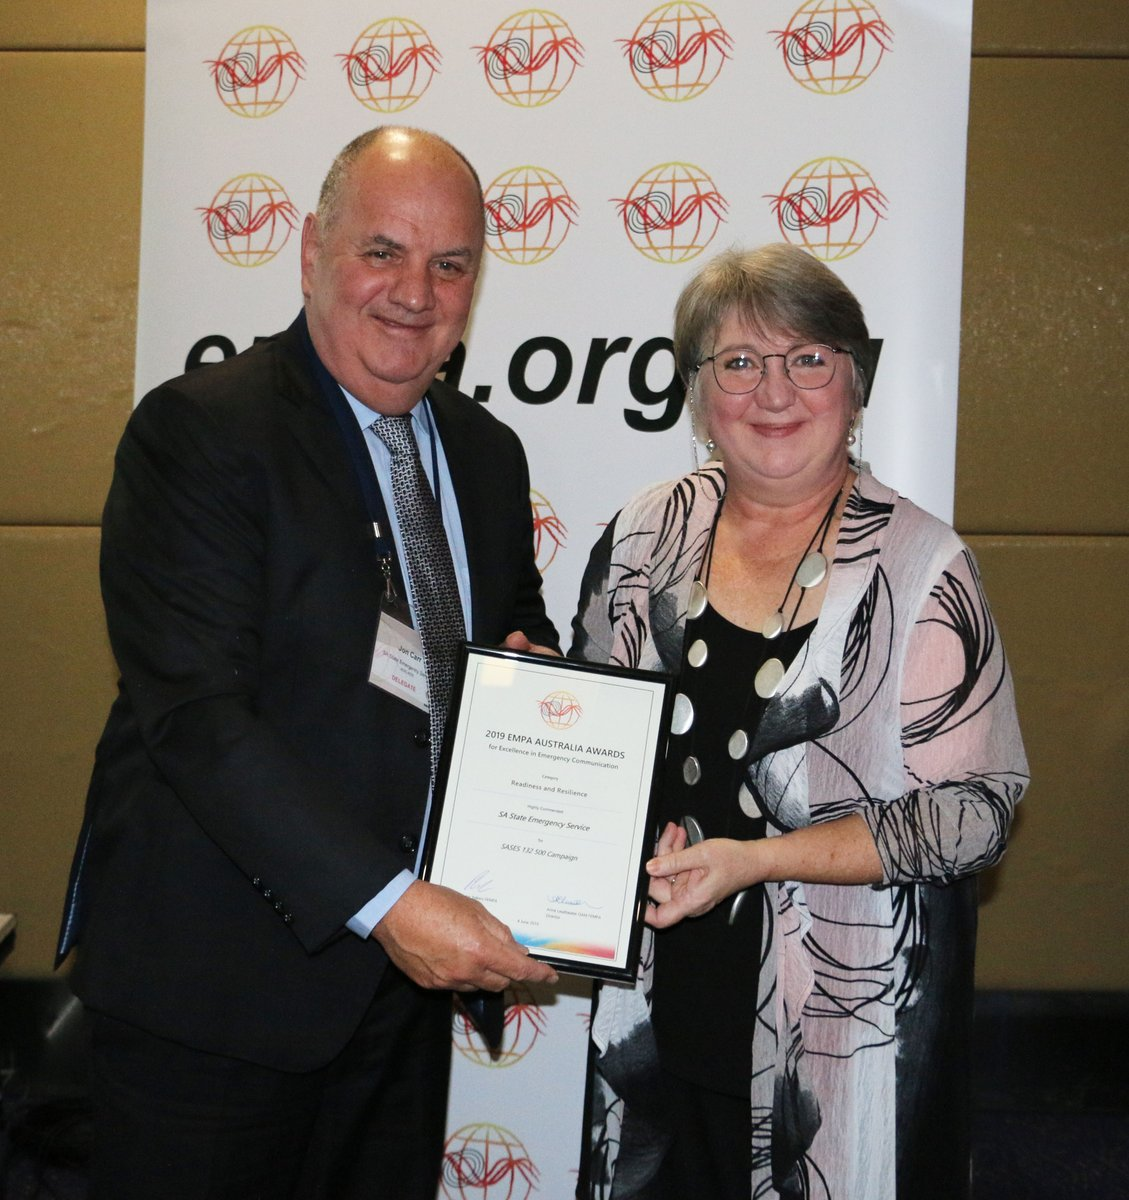 John Carr from SA SES with Anne Leadbeater